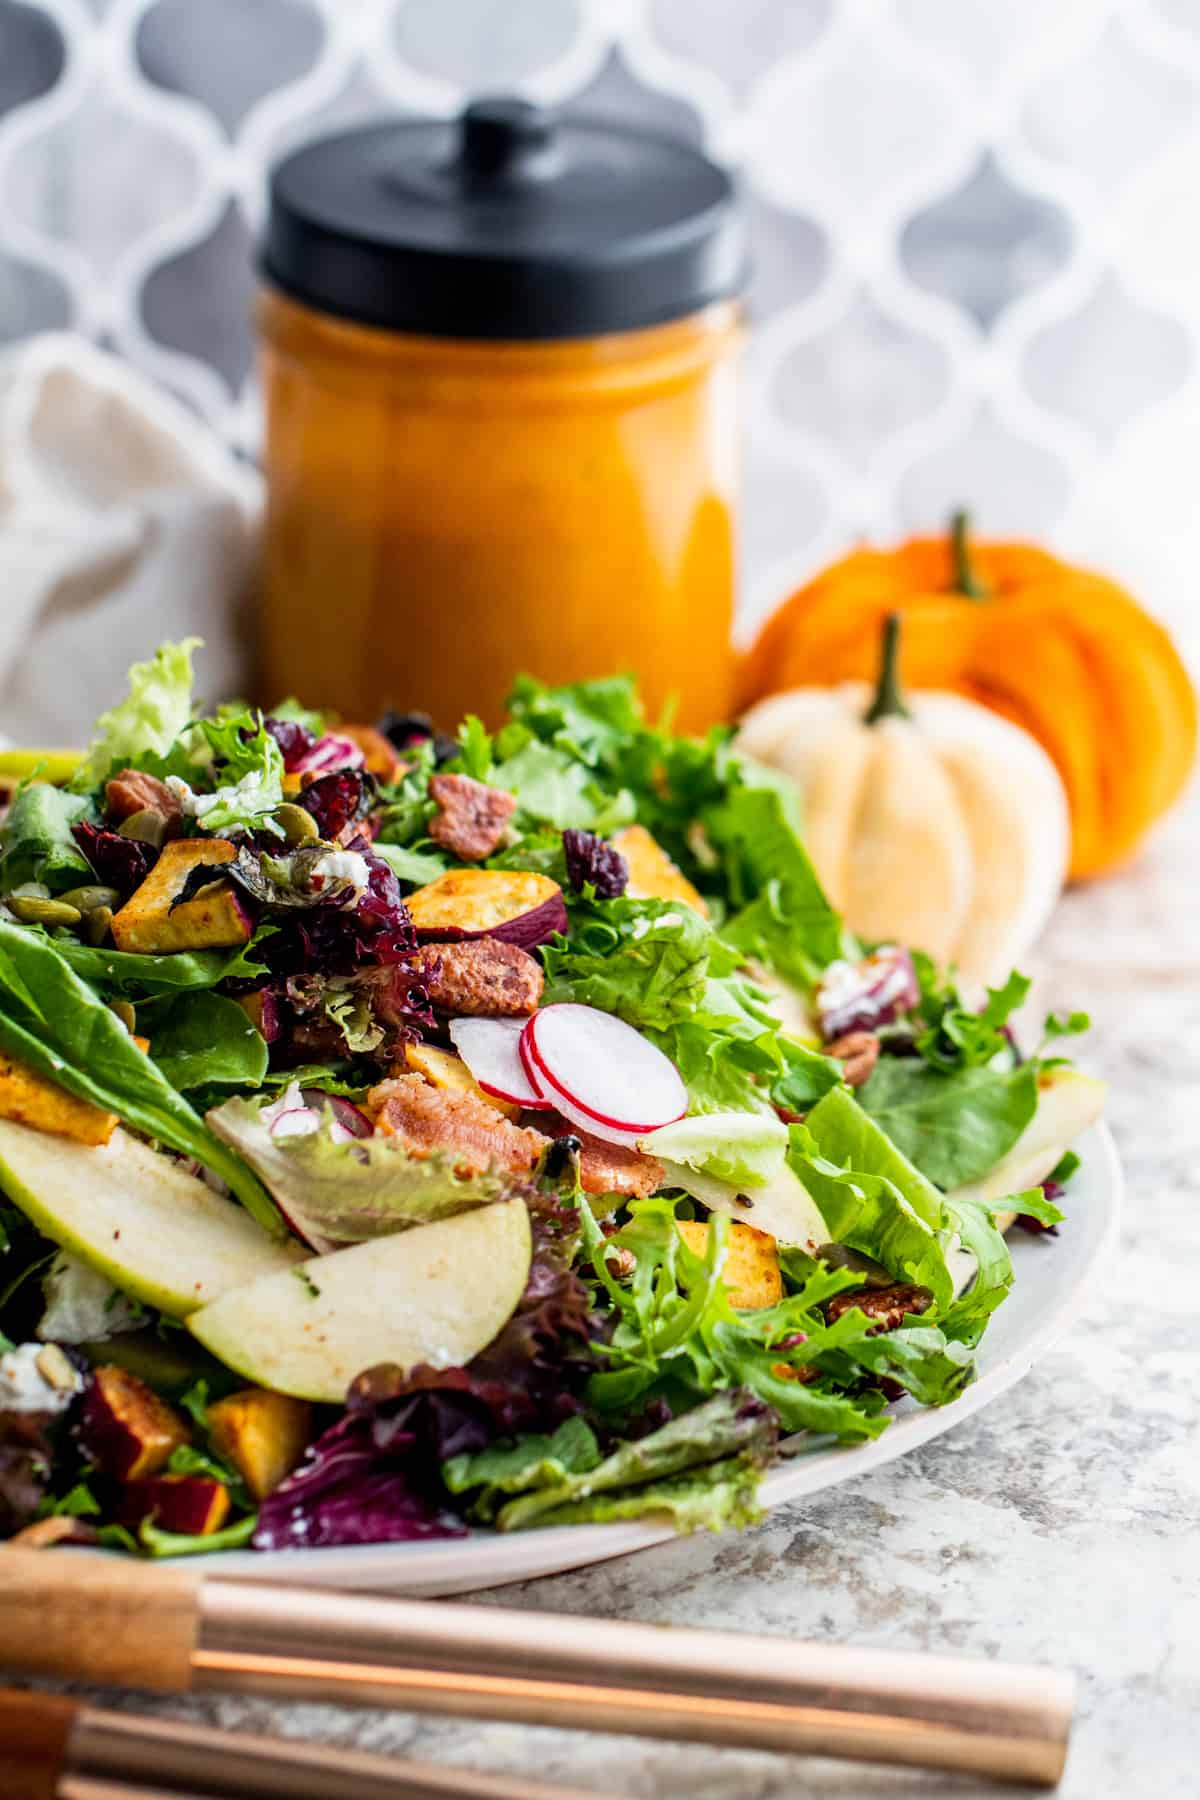 Salad on large plate with dressing and pumpkin in background.